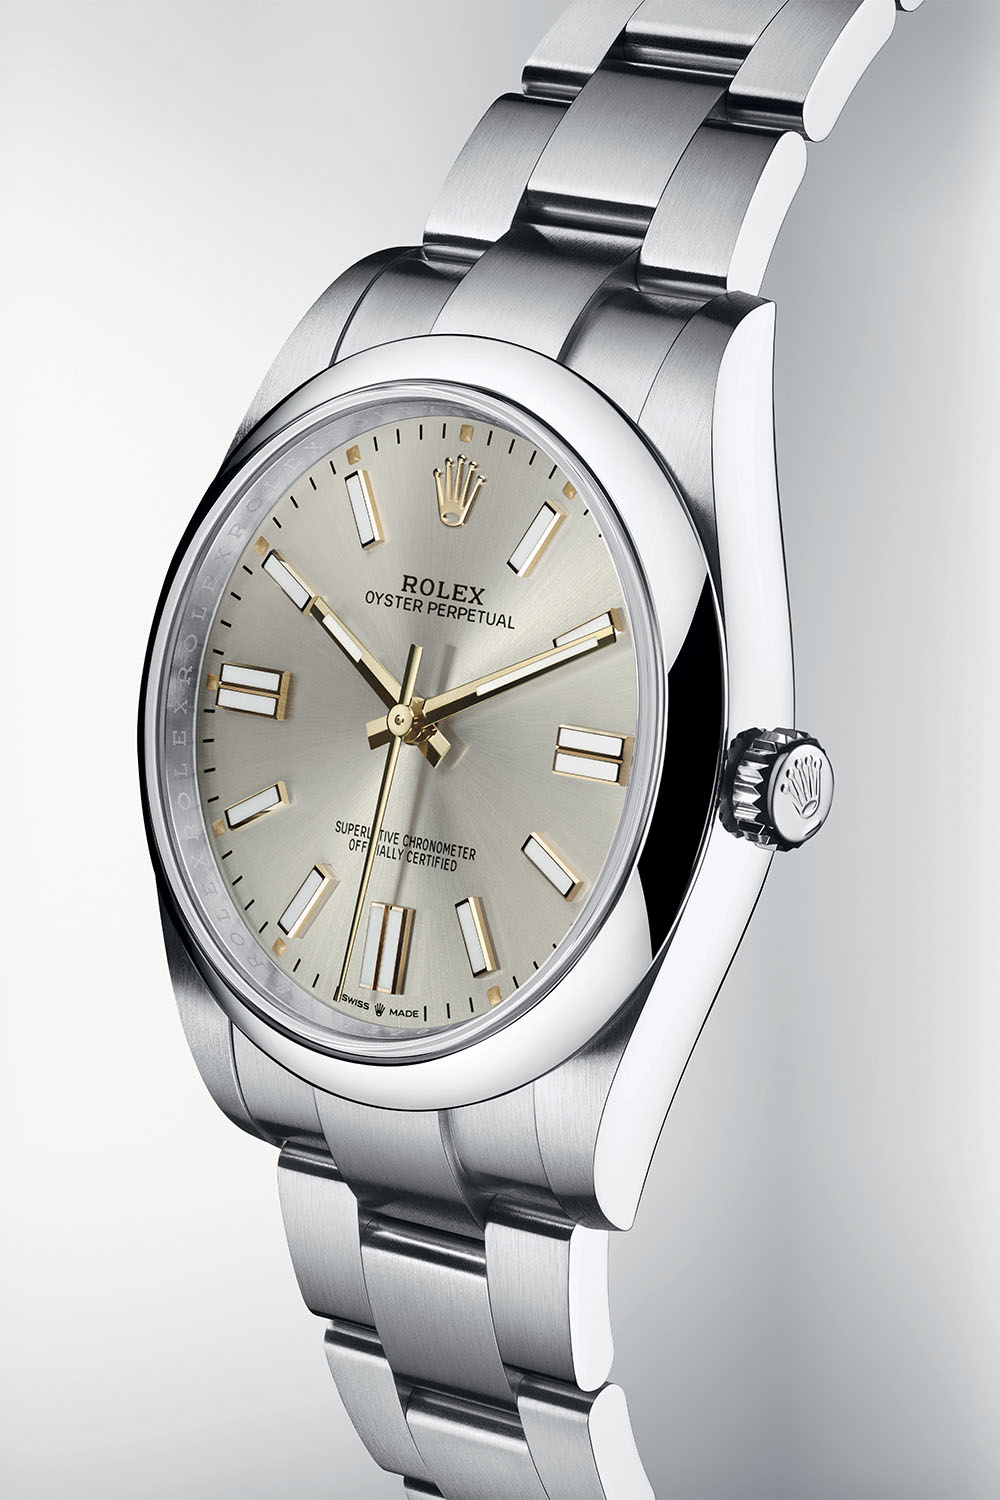 2020 Rolex Oyster Perpetual 41 reference 124300 - 5